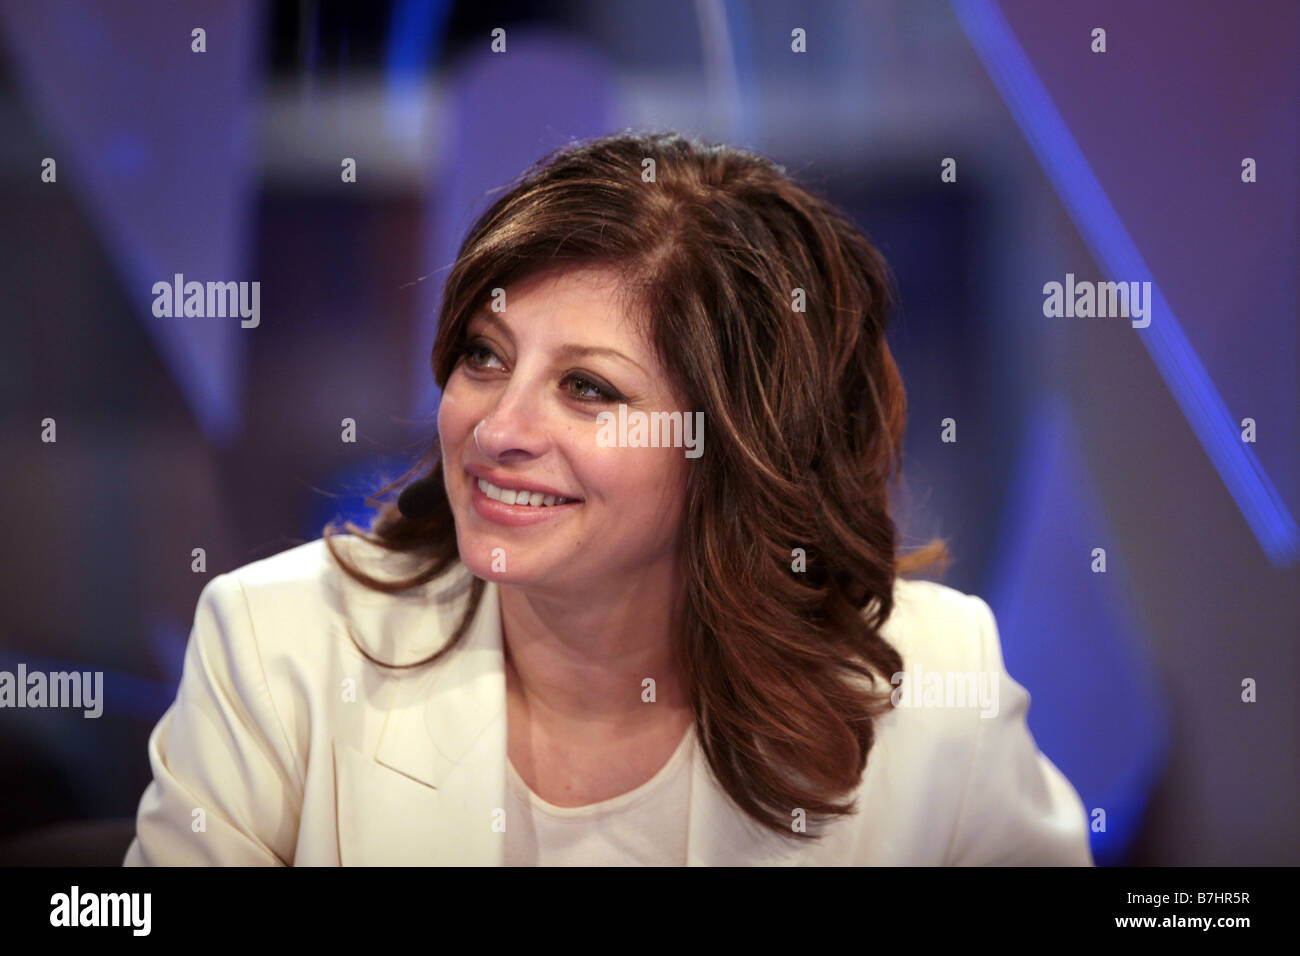 Jan 8, 2009 - Las Vegas, Nevada, USA - NBC financial expert MARIA BARTIROMO broadcasts live on CNBC at CES electronics - Stock Image